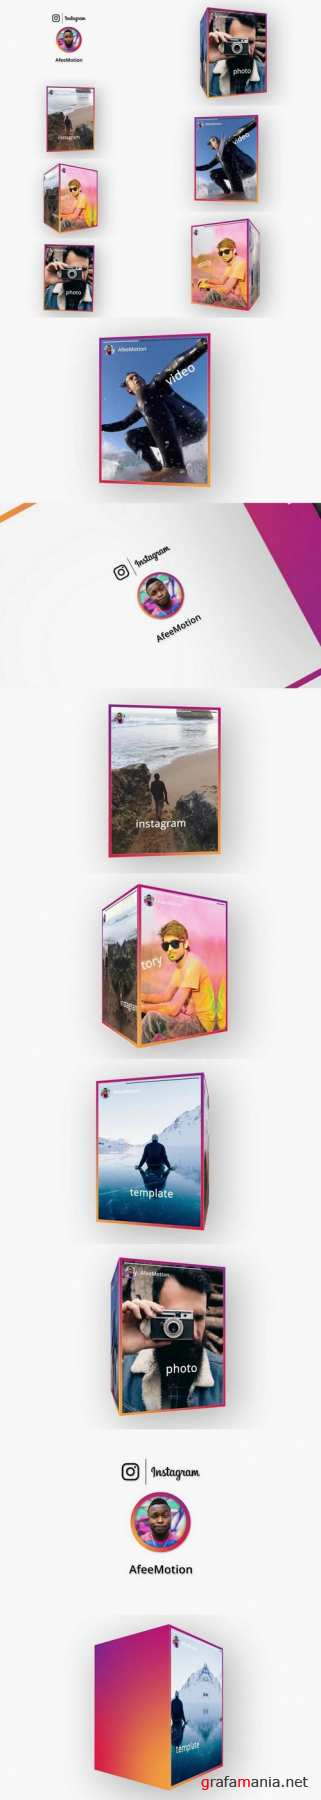 Instagram Stories After Effects Templates